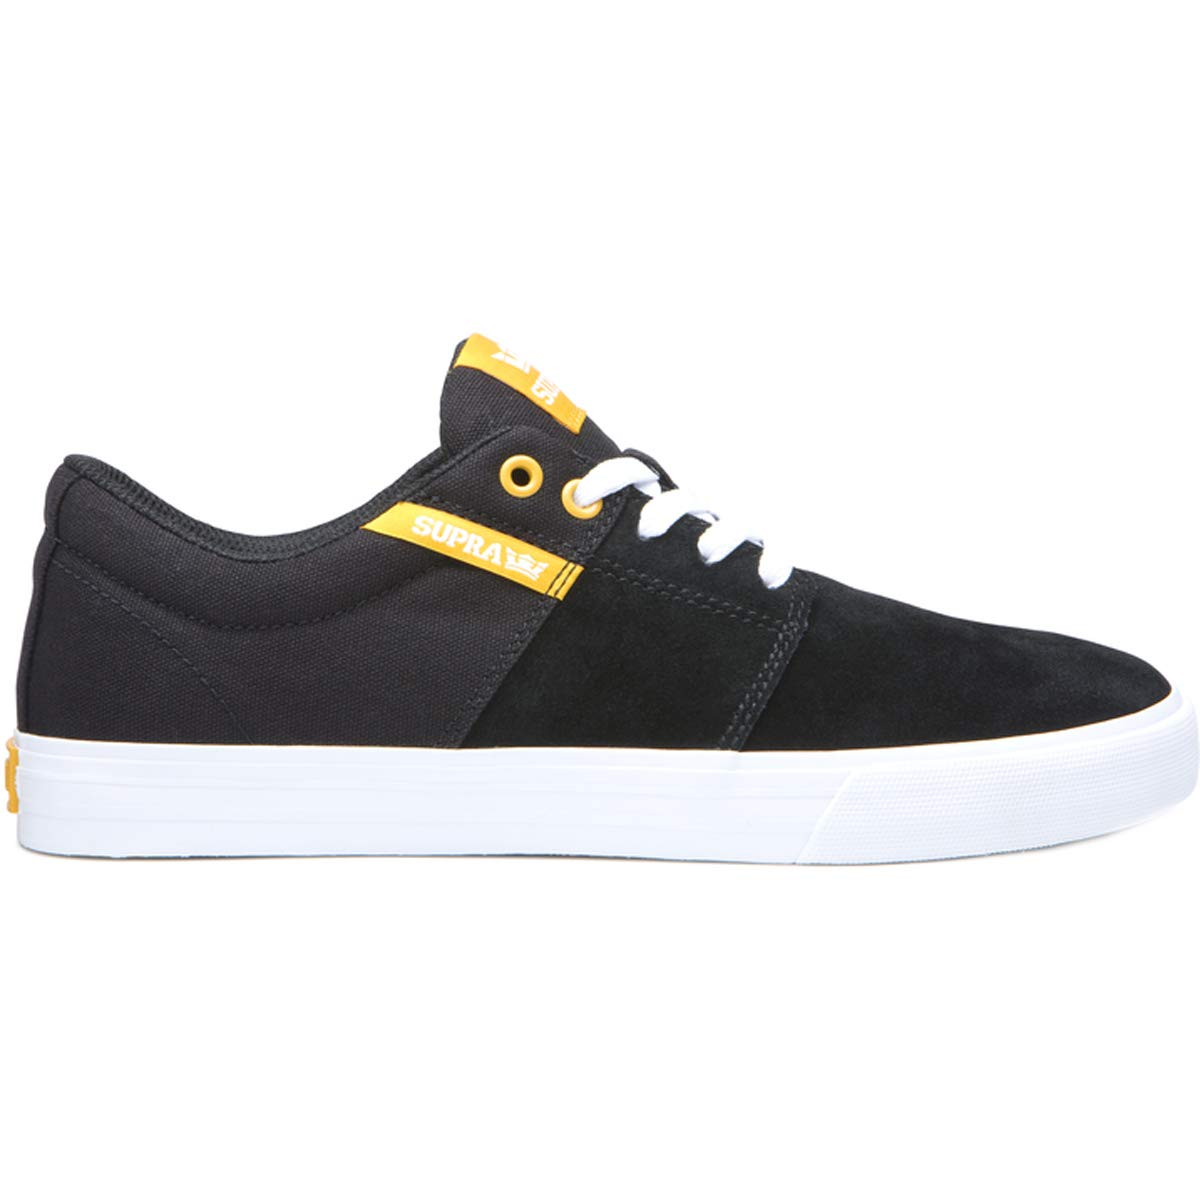 d37cf5fef0fd Galleon - Supra Men s Stacks II Vulc Shoes